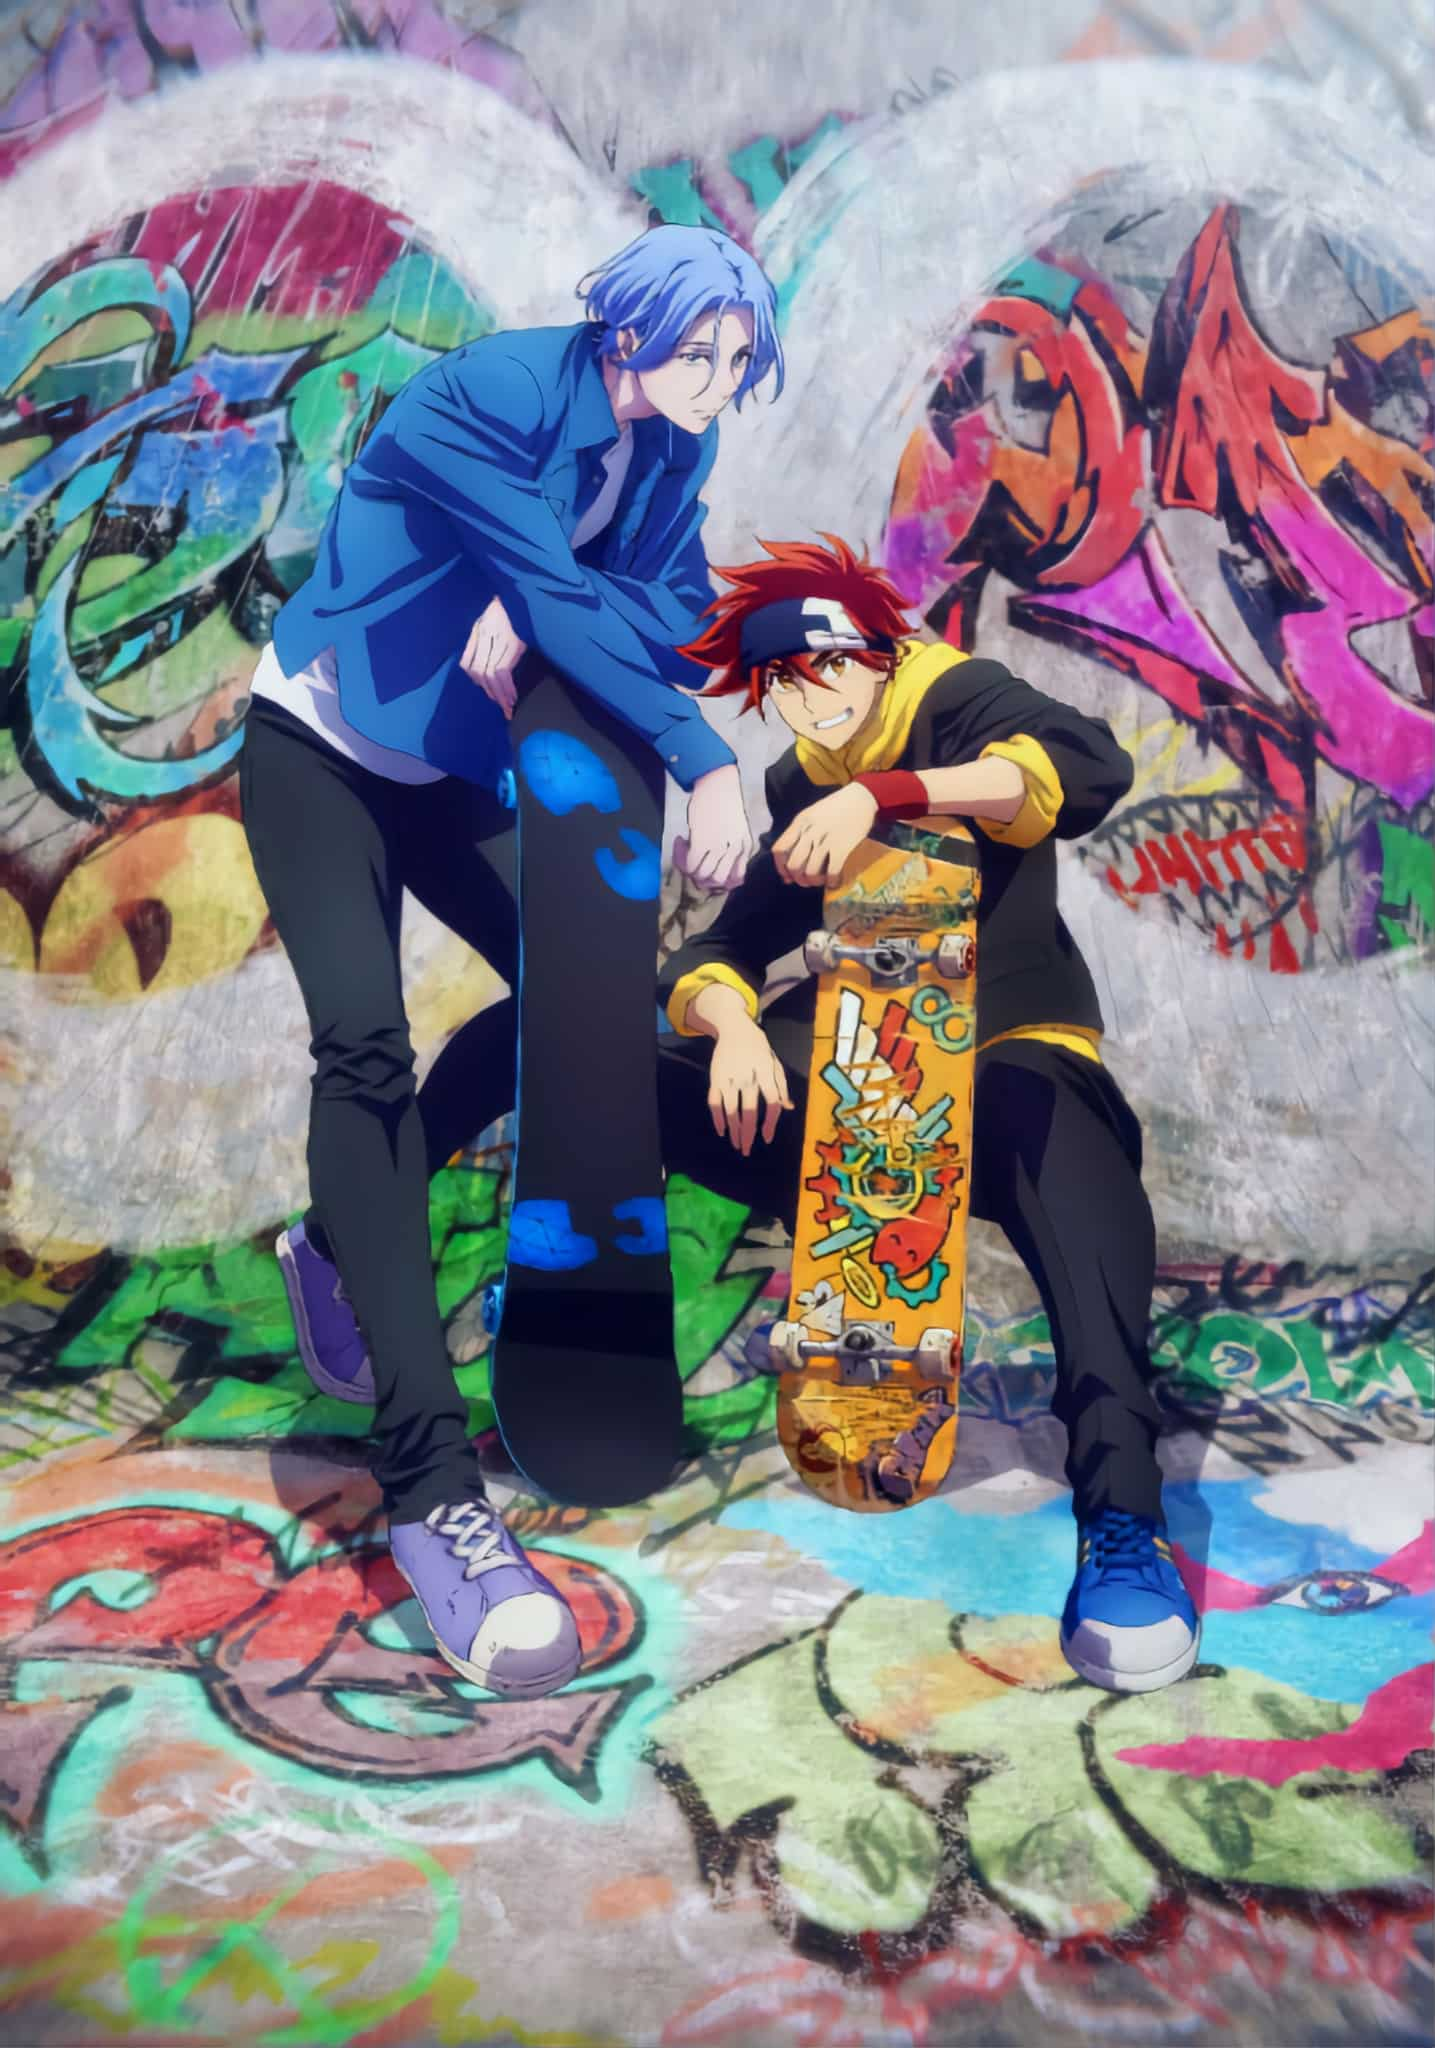 Annonce de l'anime SK8 The Infinity